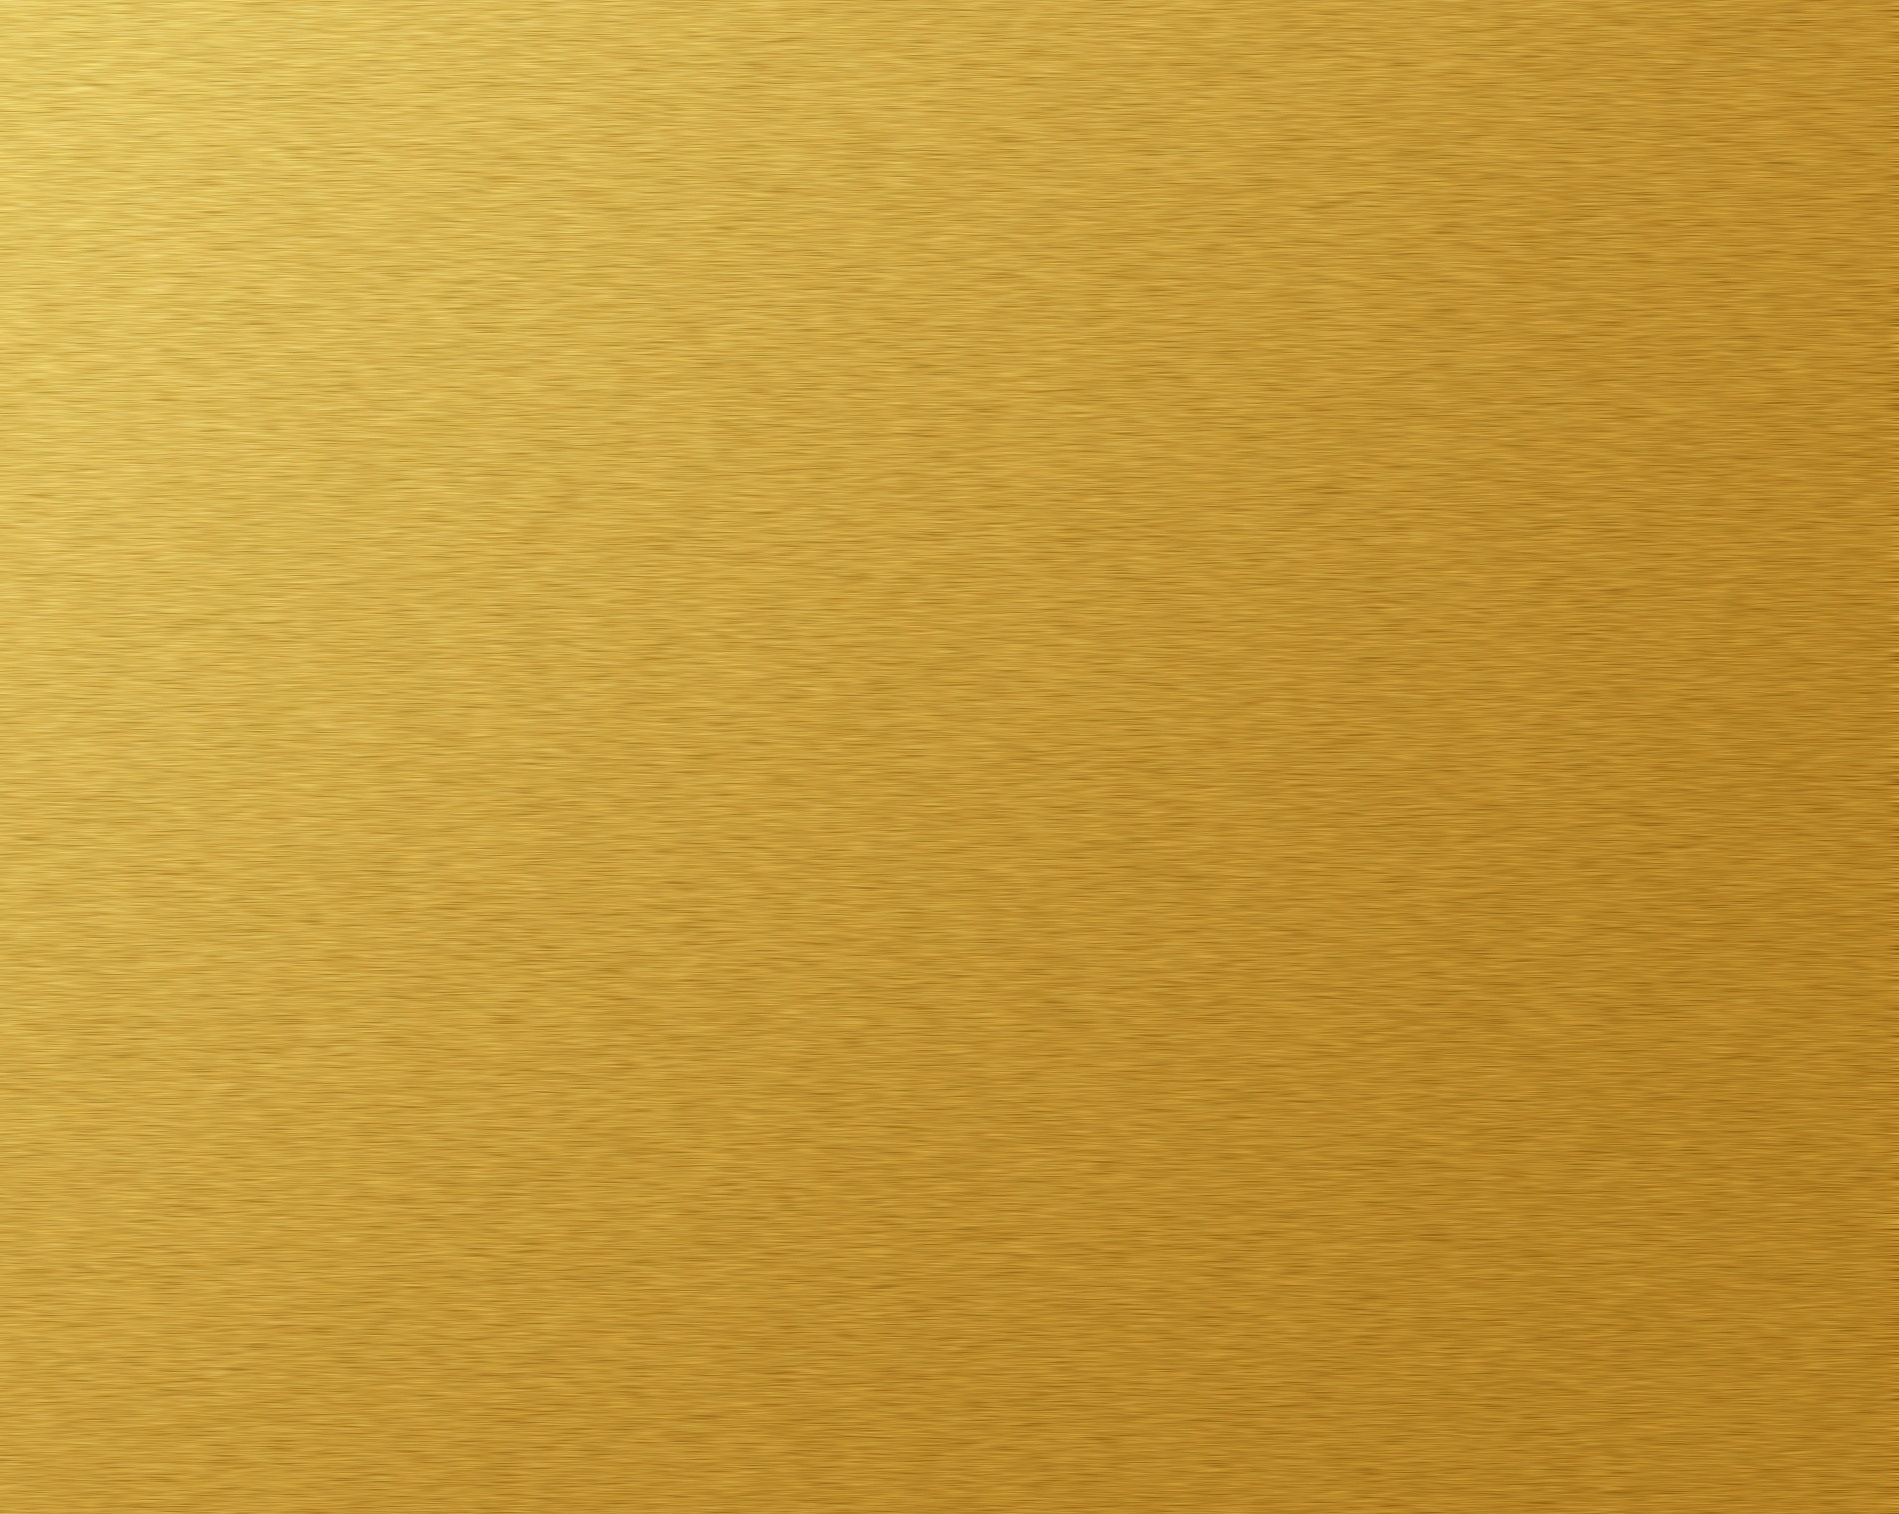 gold texture texture gold gold golden background background 1899x1514